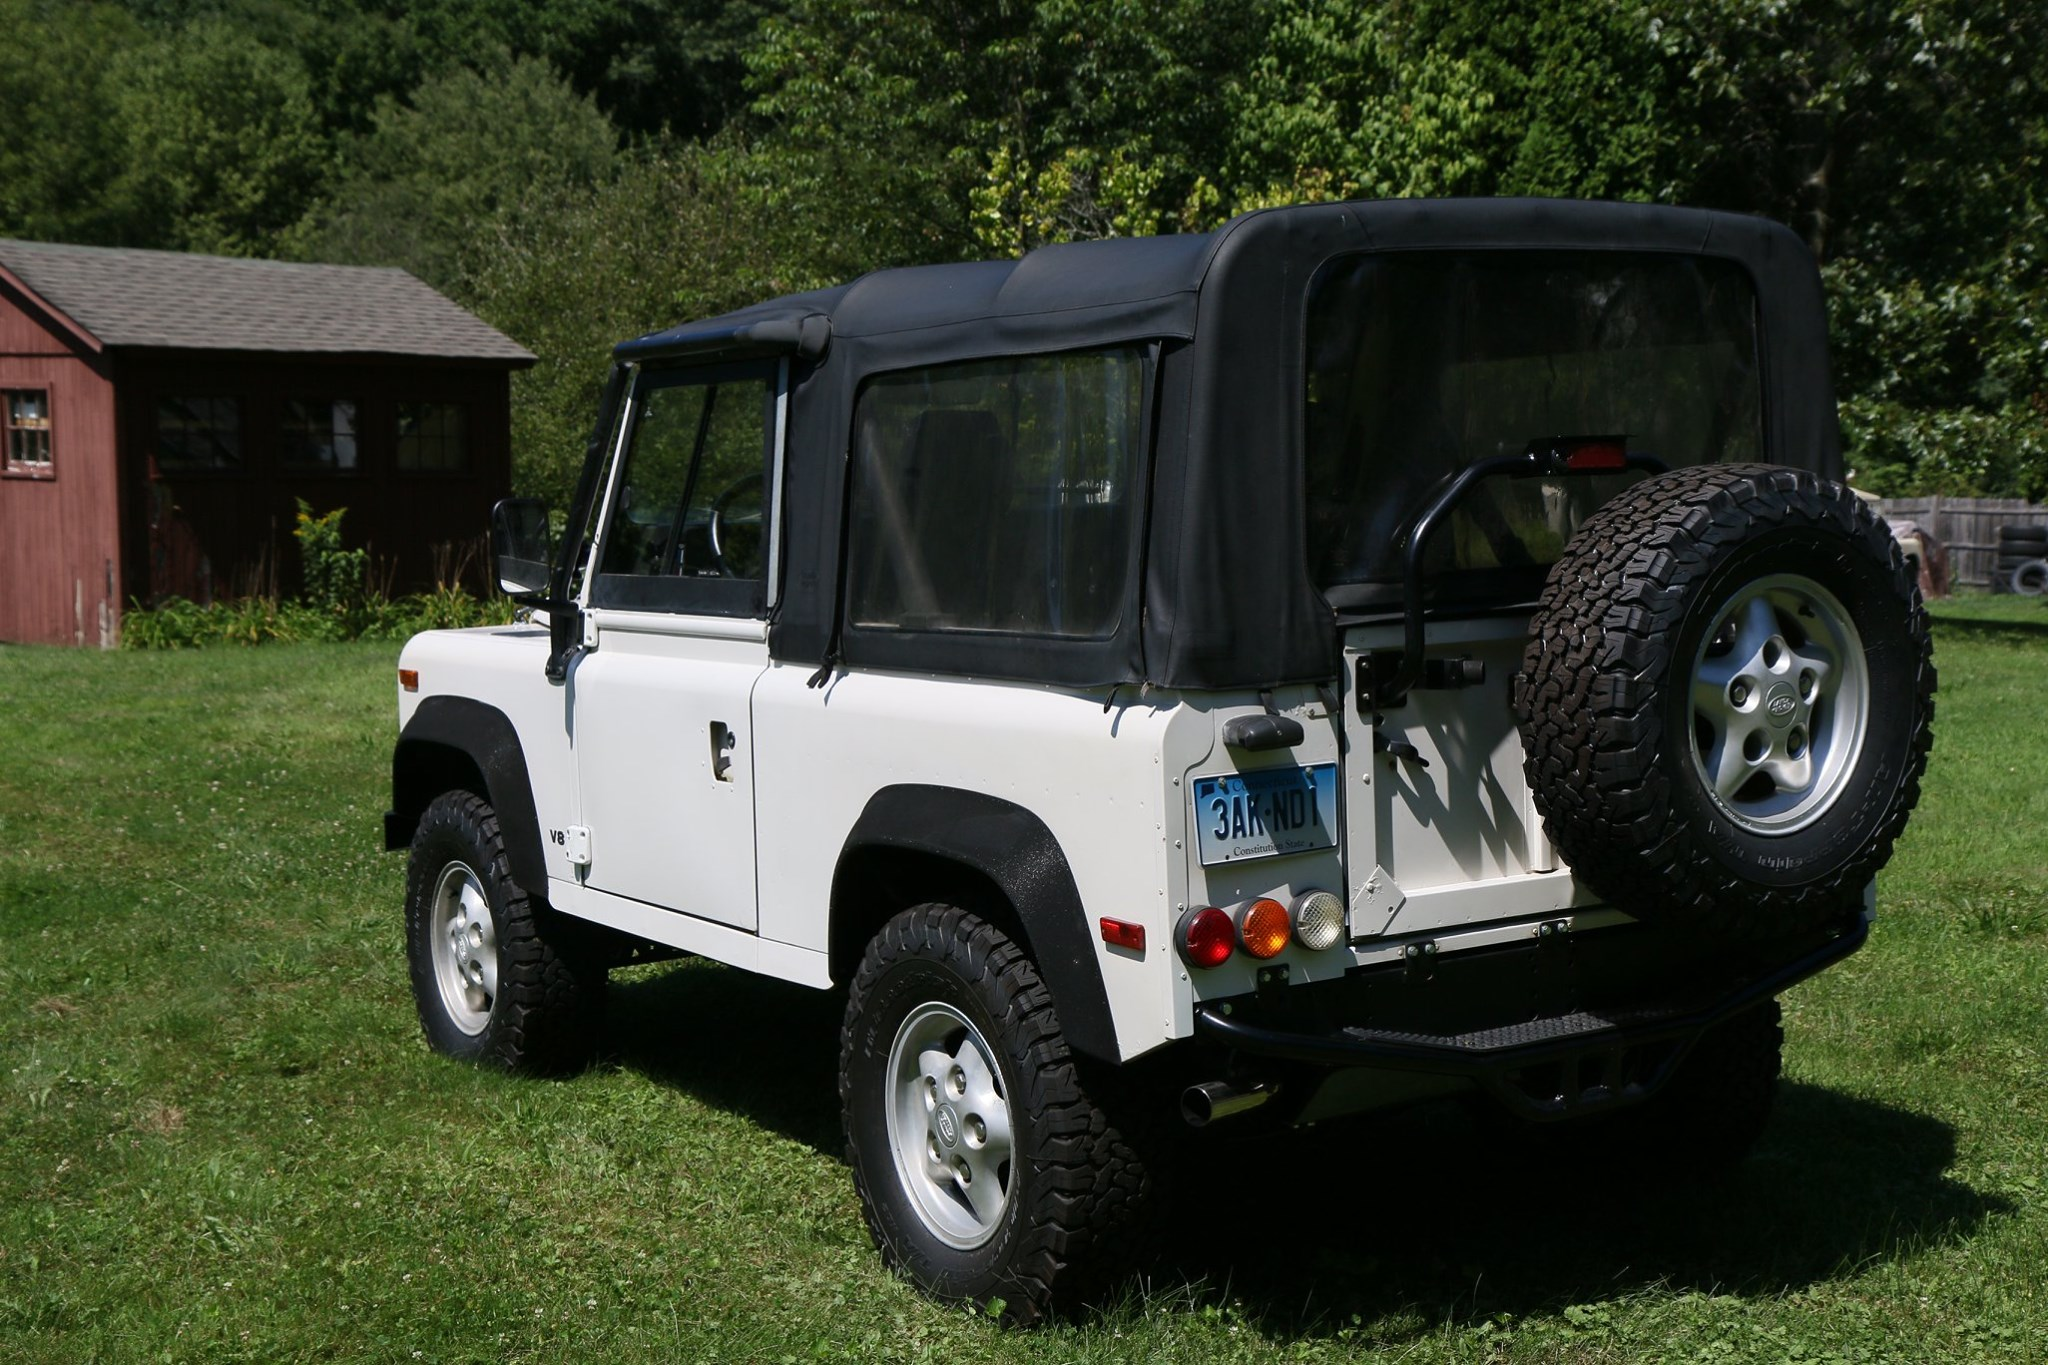 1969 Land Rover Series IIa 3